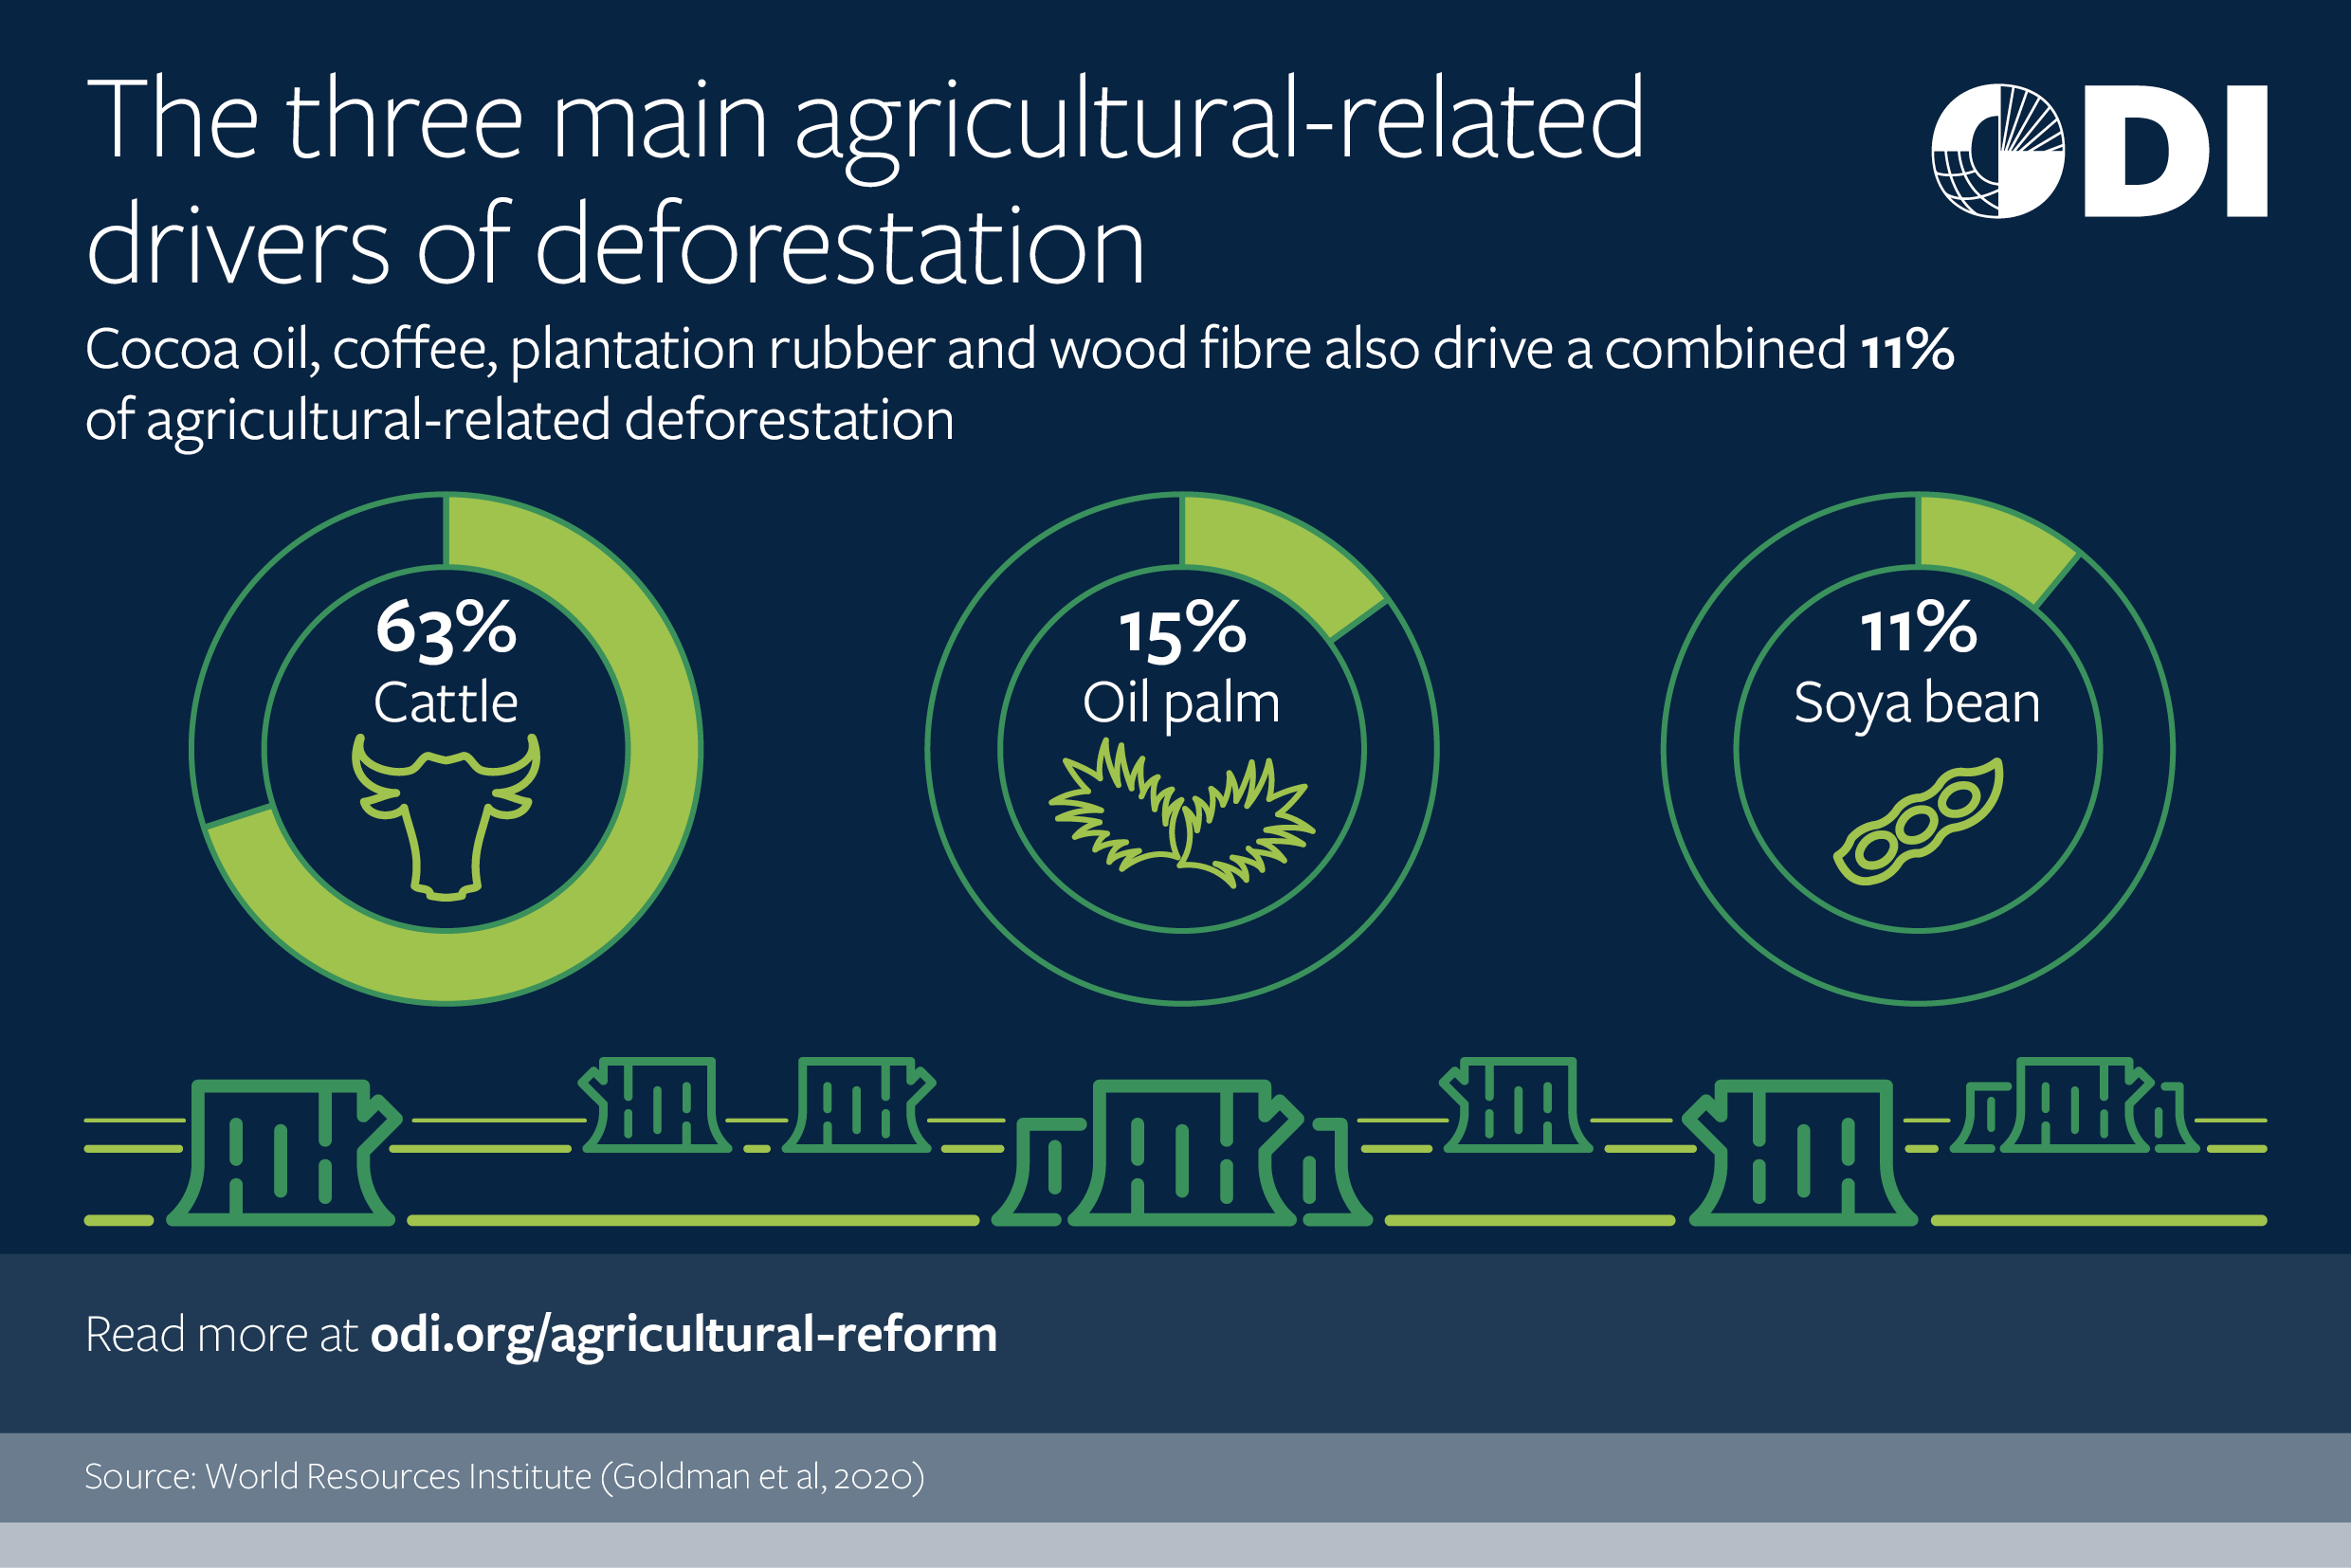 The three main agricultural-related drivers of deforestation.